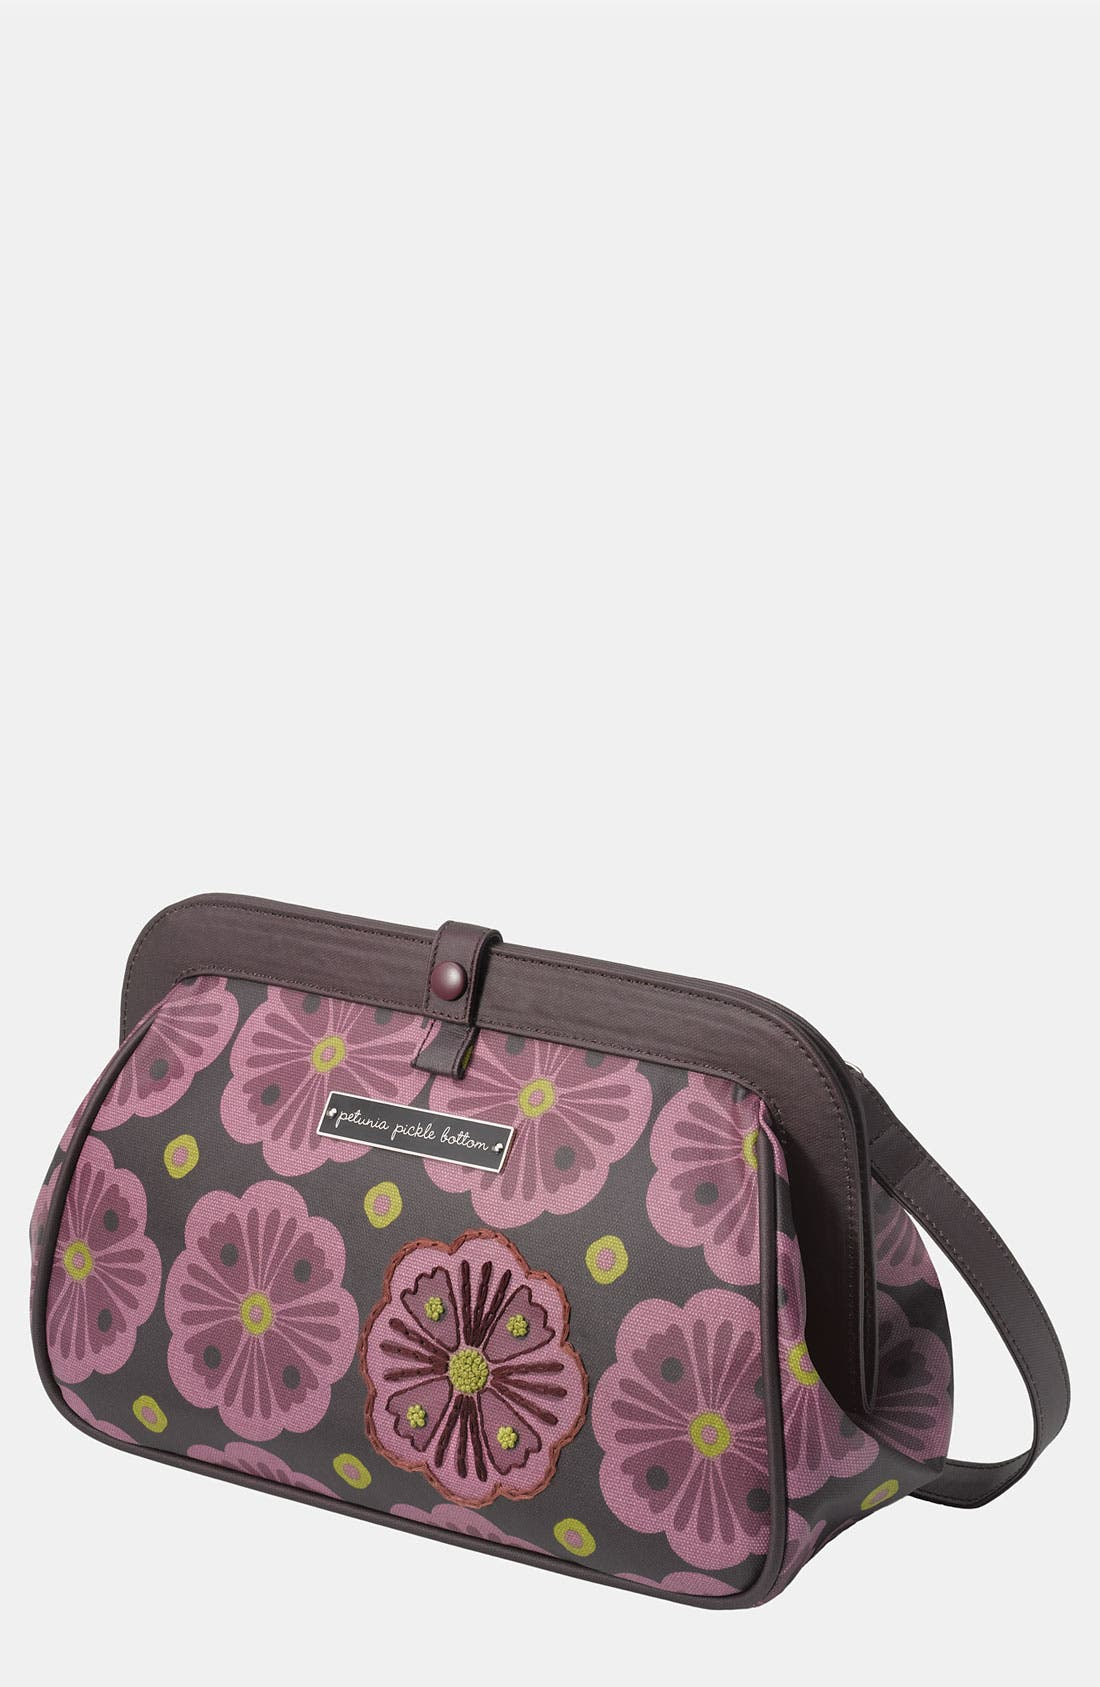 Alternate Image 1 Selected - Petunia Pickle Bottom Coated Canvas Clutch